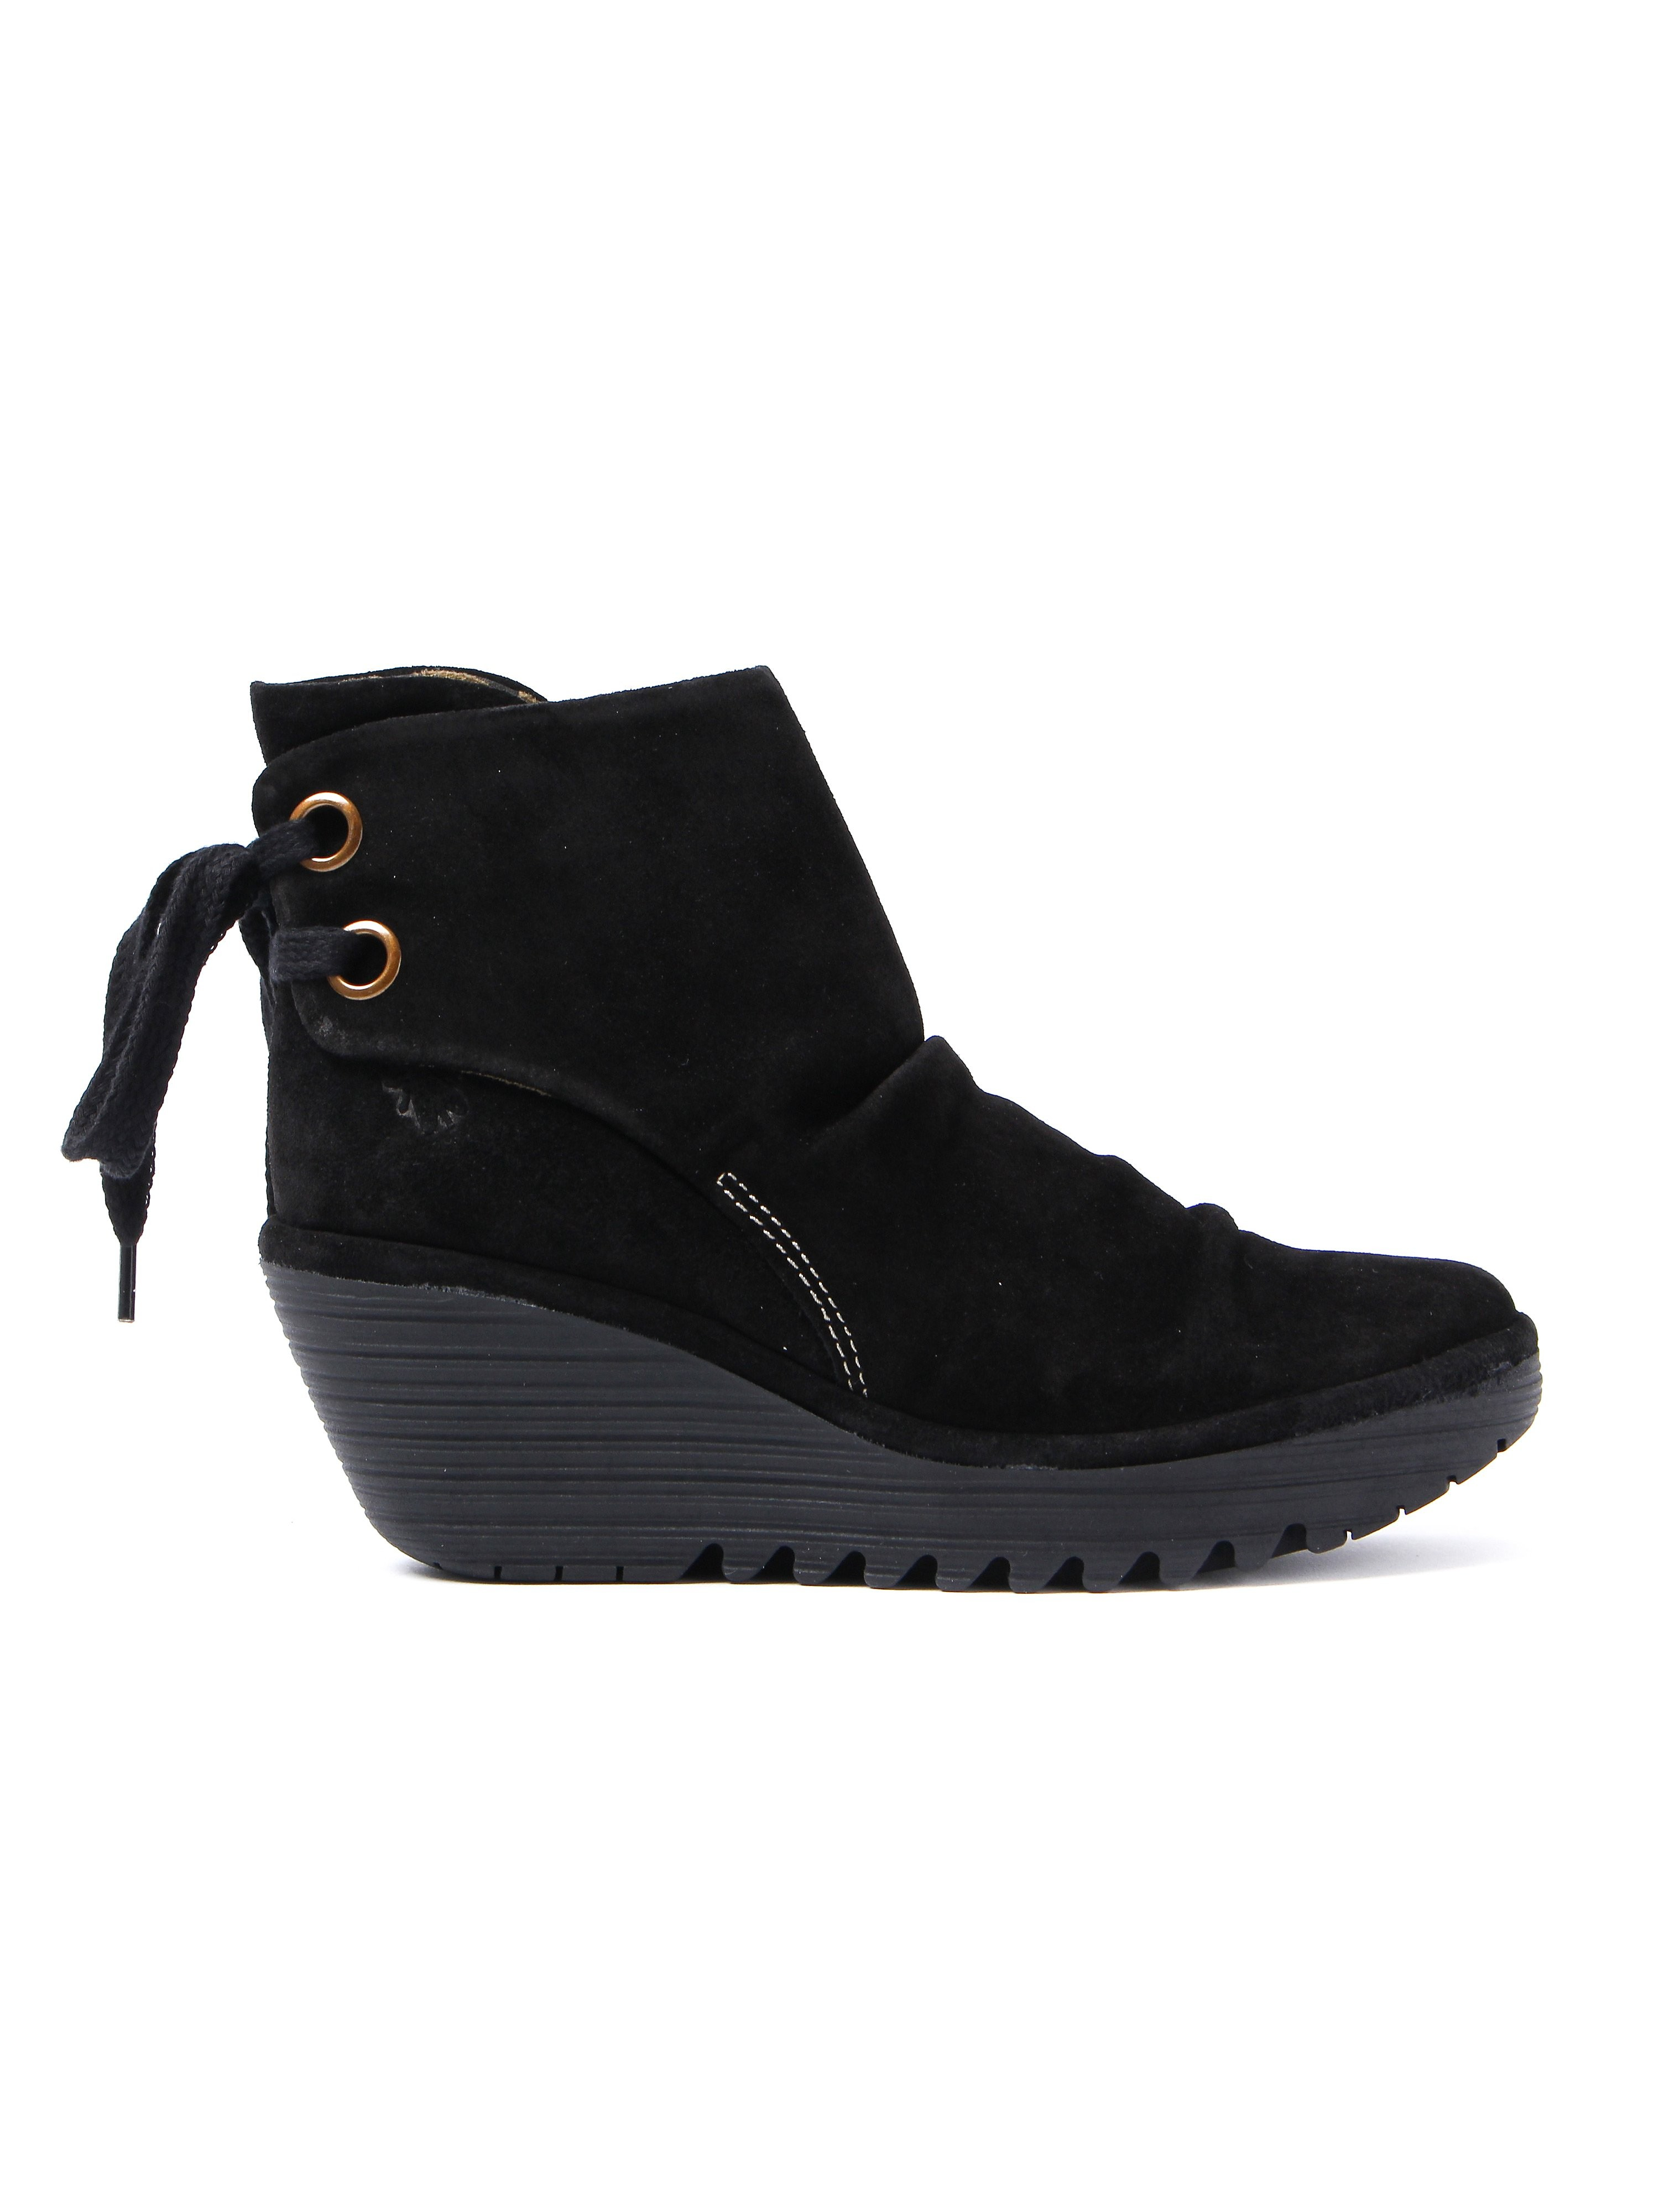 Fly London Women's Yama Ankle Boots - Oil Black Suede